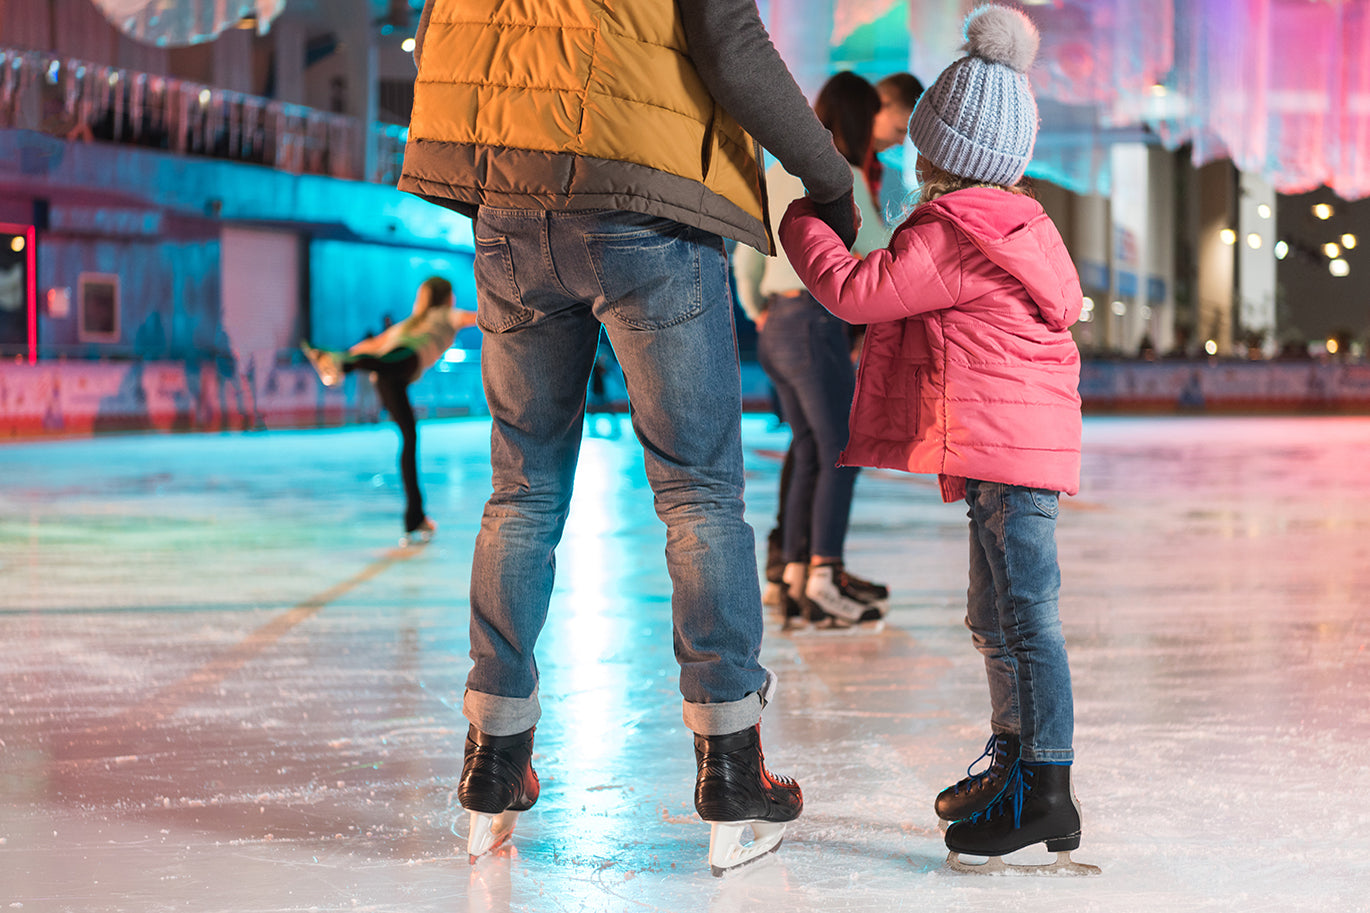 Holiday Ice Skating with Family | DipWell Nails